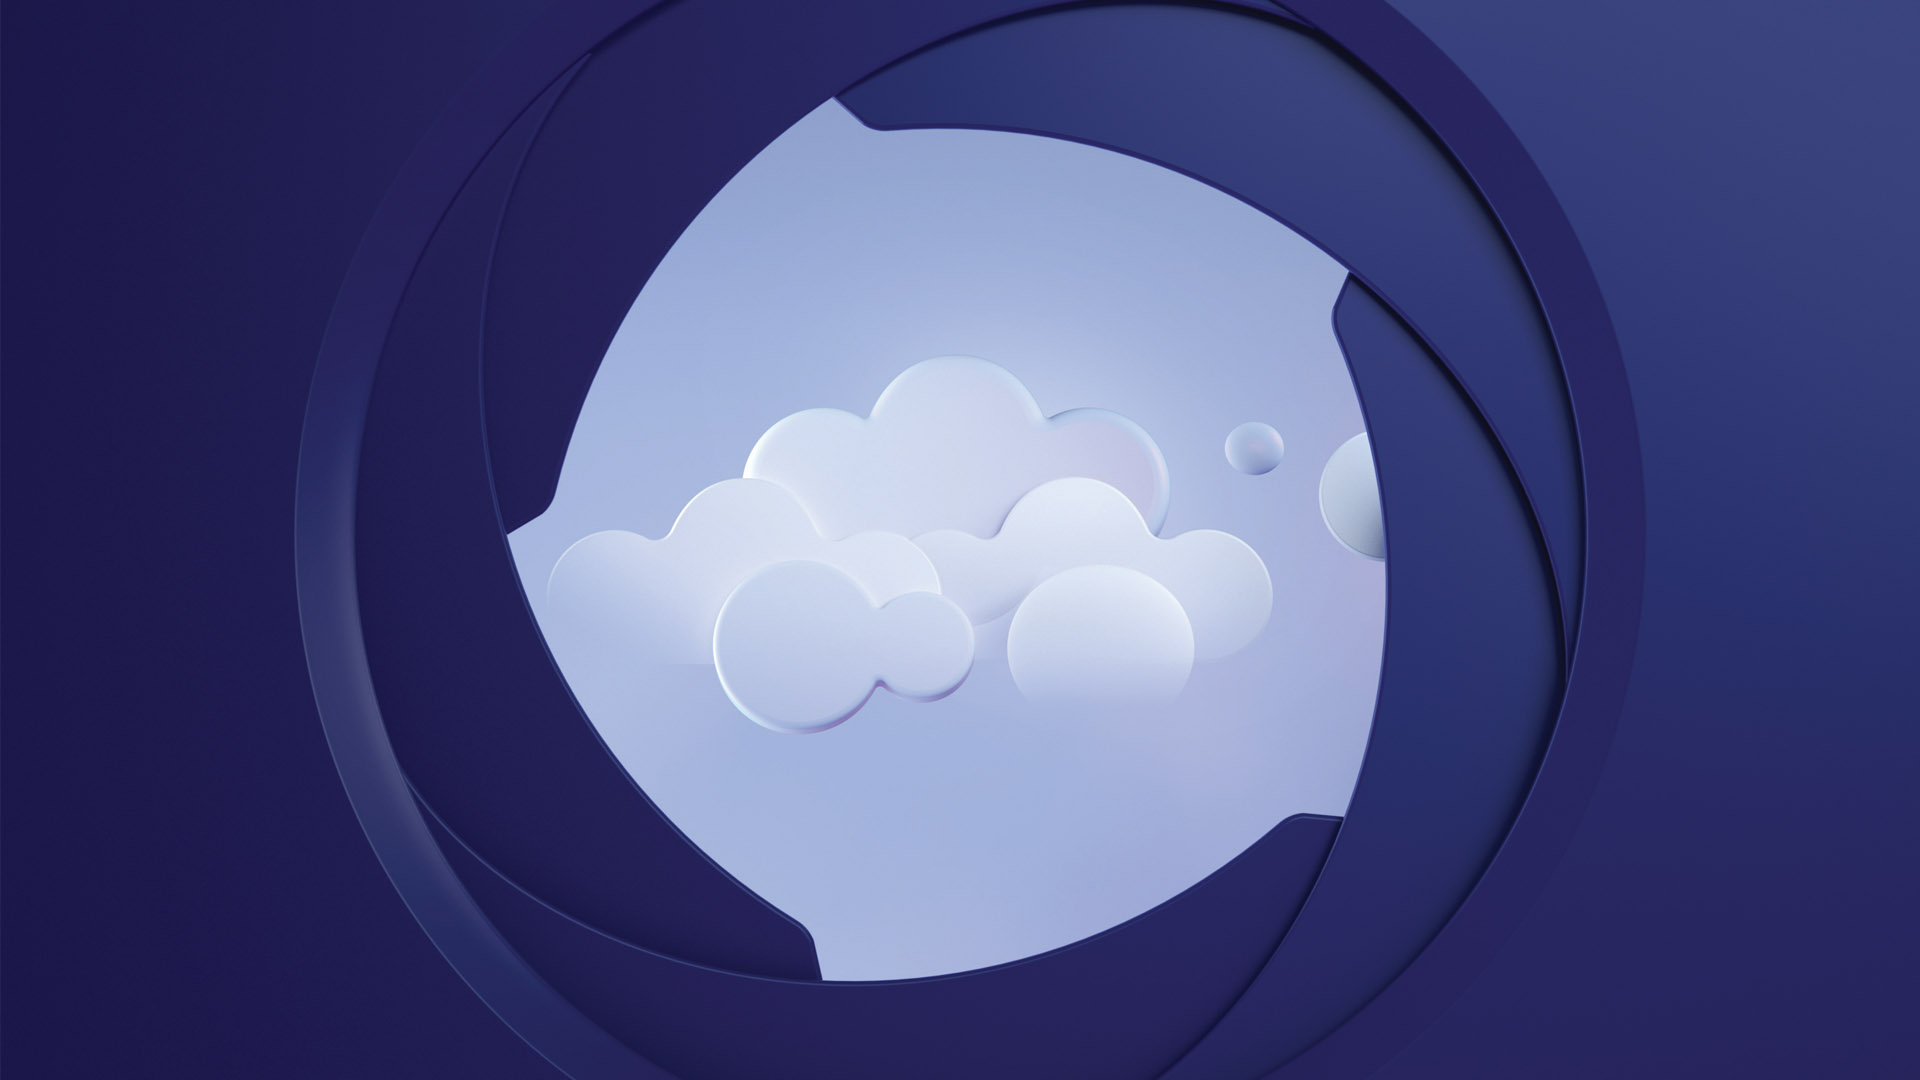 Illustration of a cloud seen through a camera lens